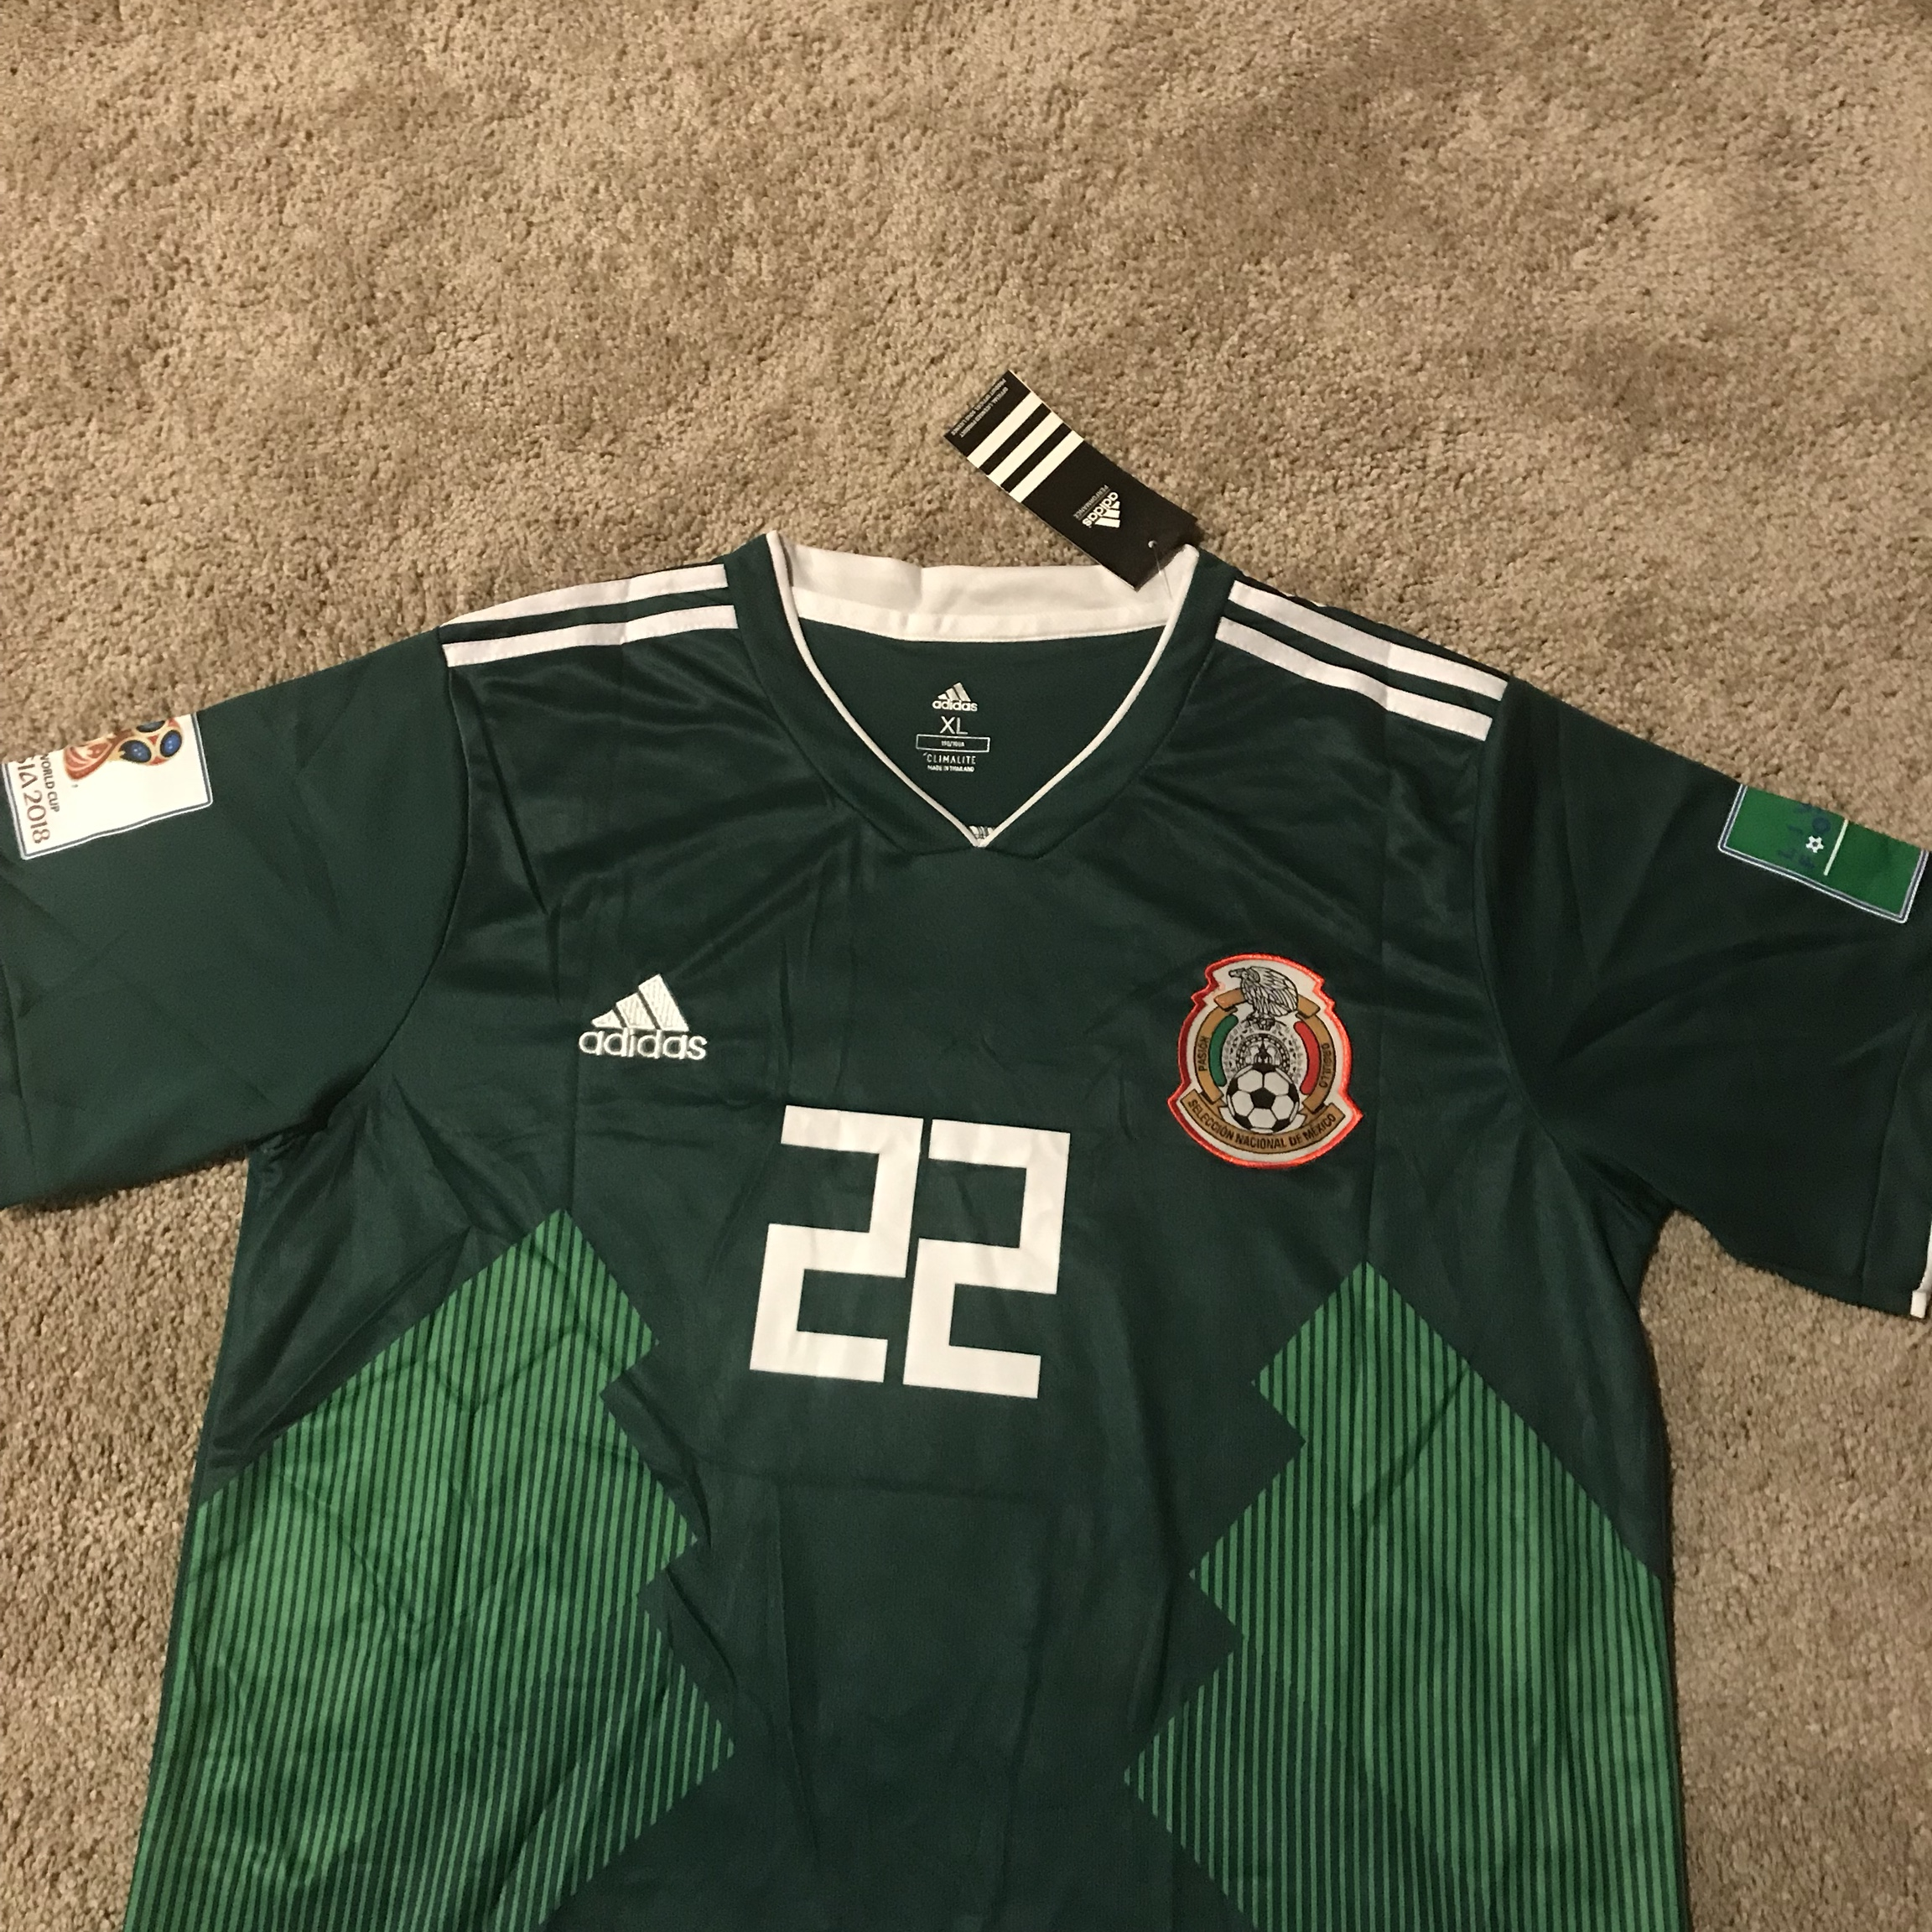 new product 359b3 722eb Hirving Lozano Mexico World Cup Green Jersey New... - Depop